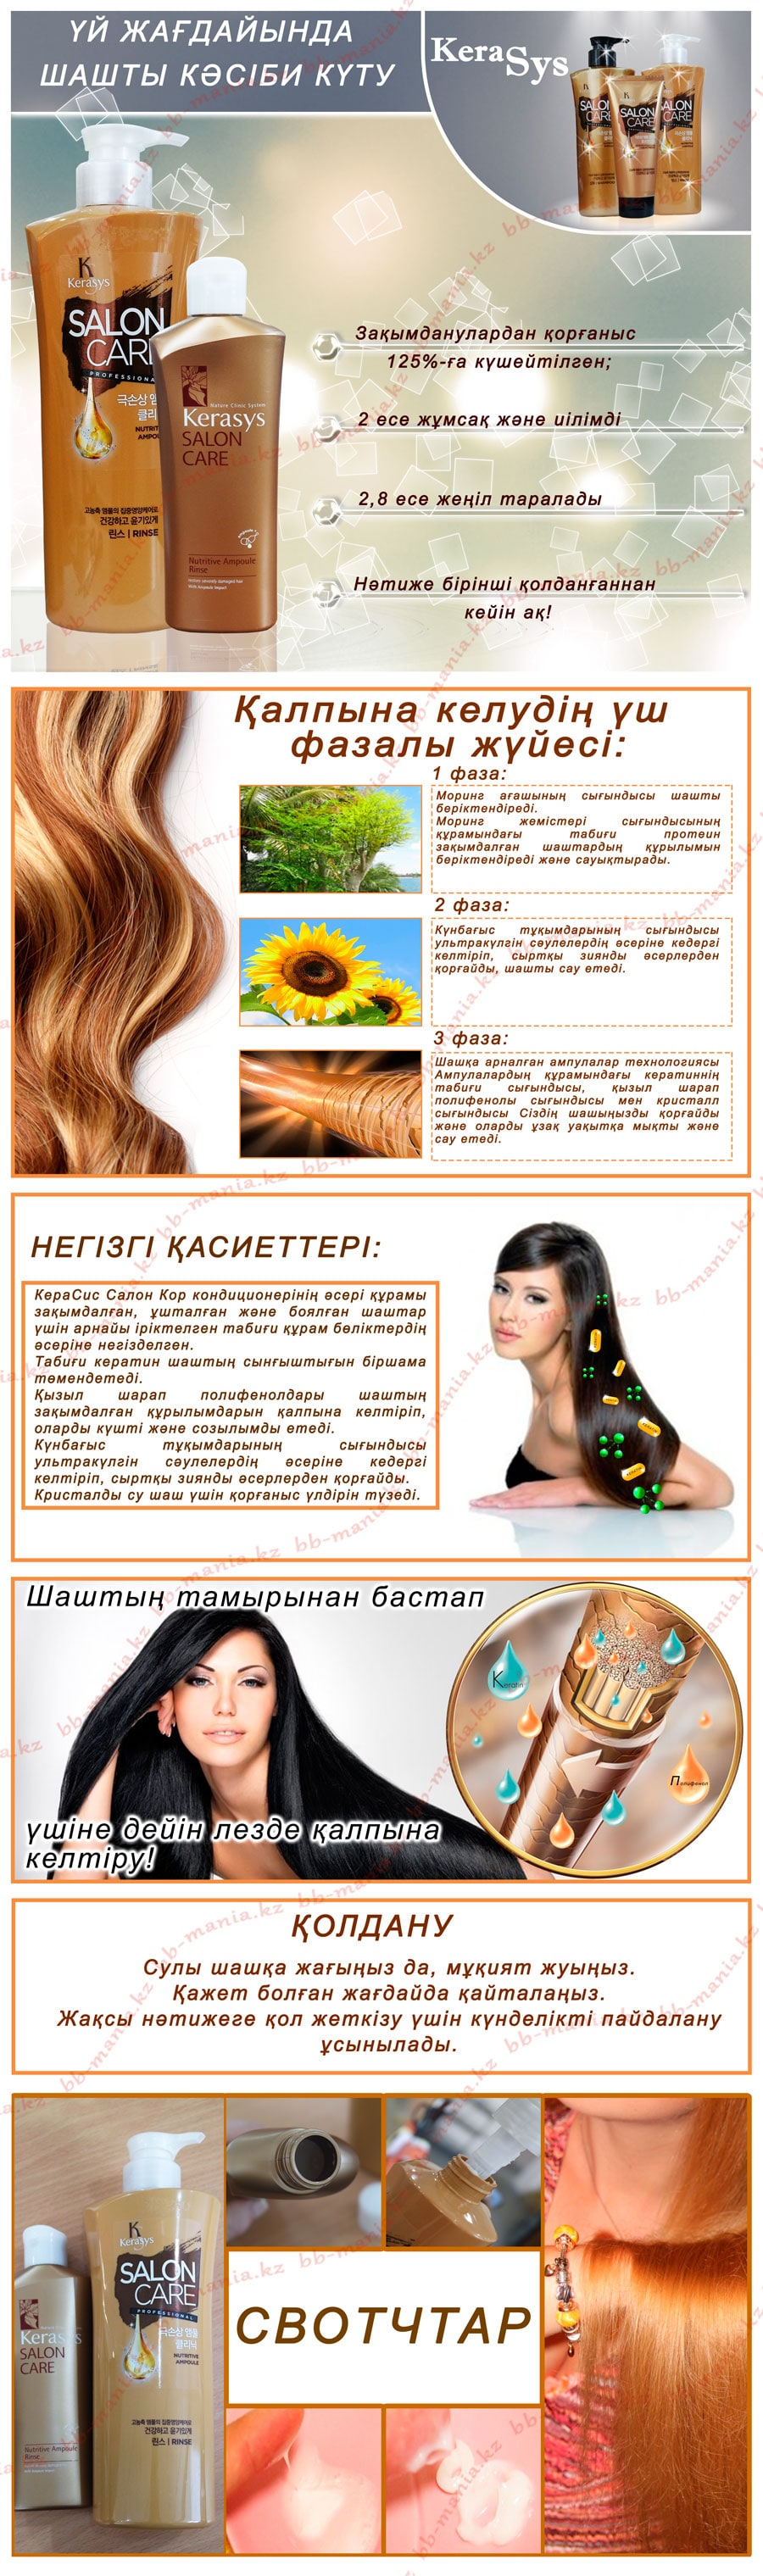 Kerasys-Salon-Care-Nutritive-Ampoule-Rinse-кз-min